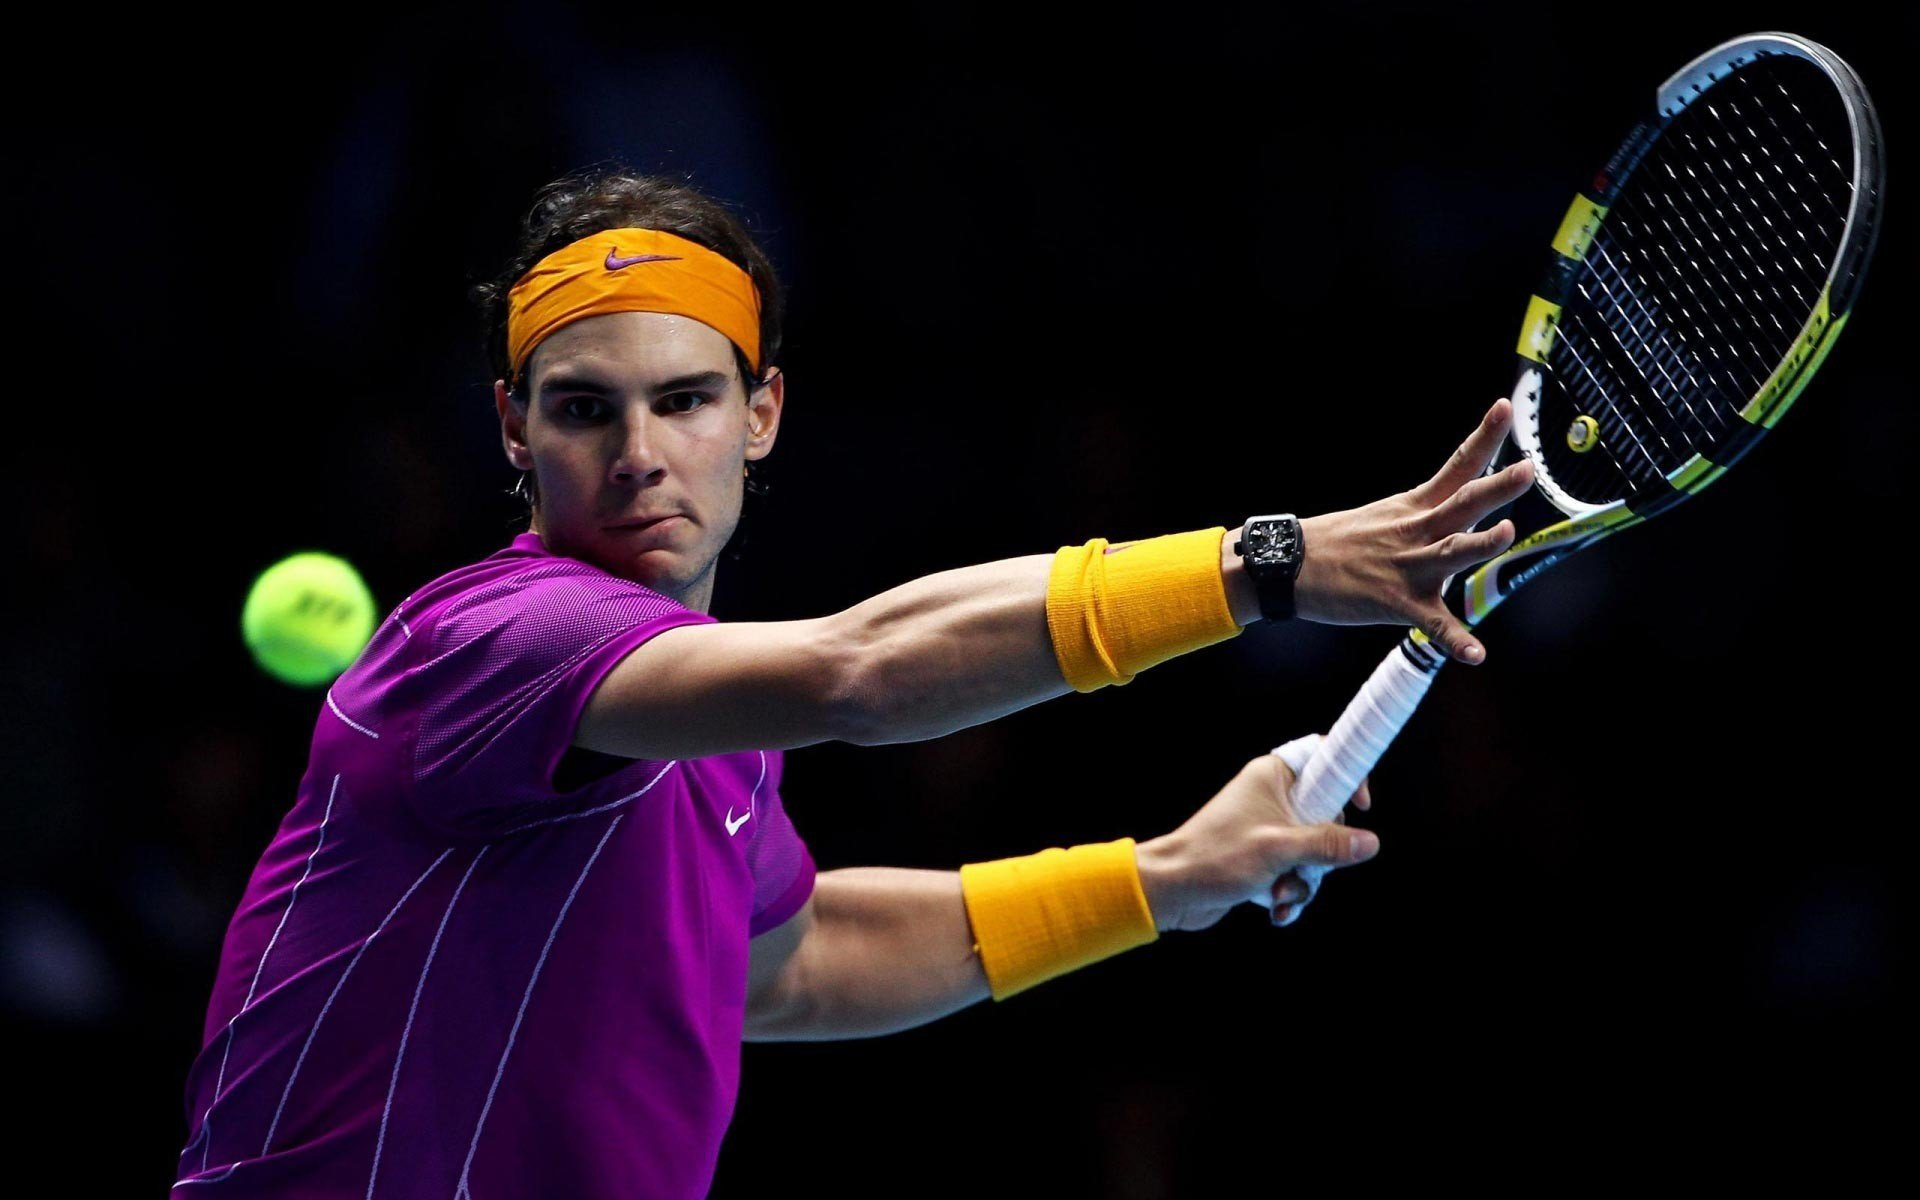 Rafael Nadal in Tennis Match Wallpapers HD Wallpapers 1920x1200